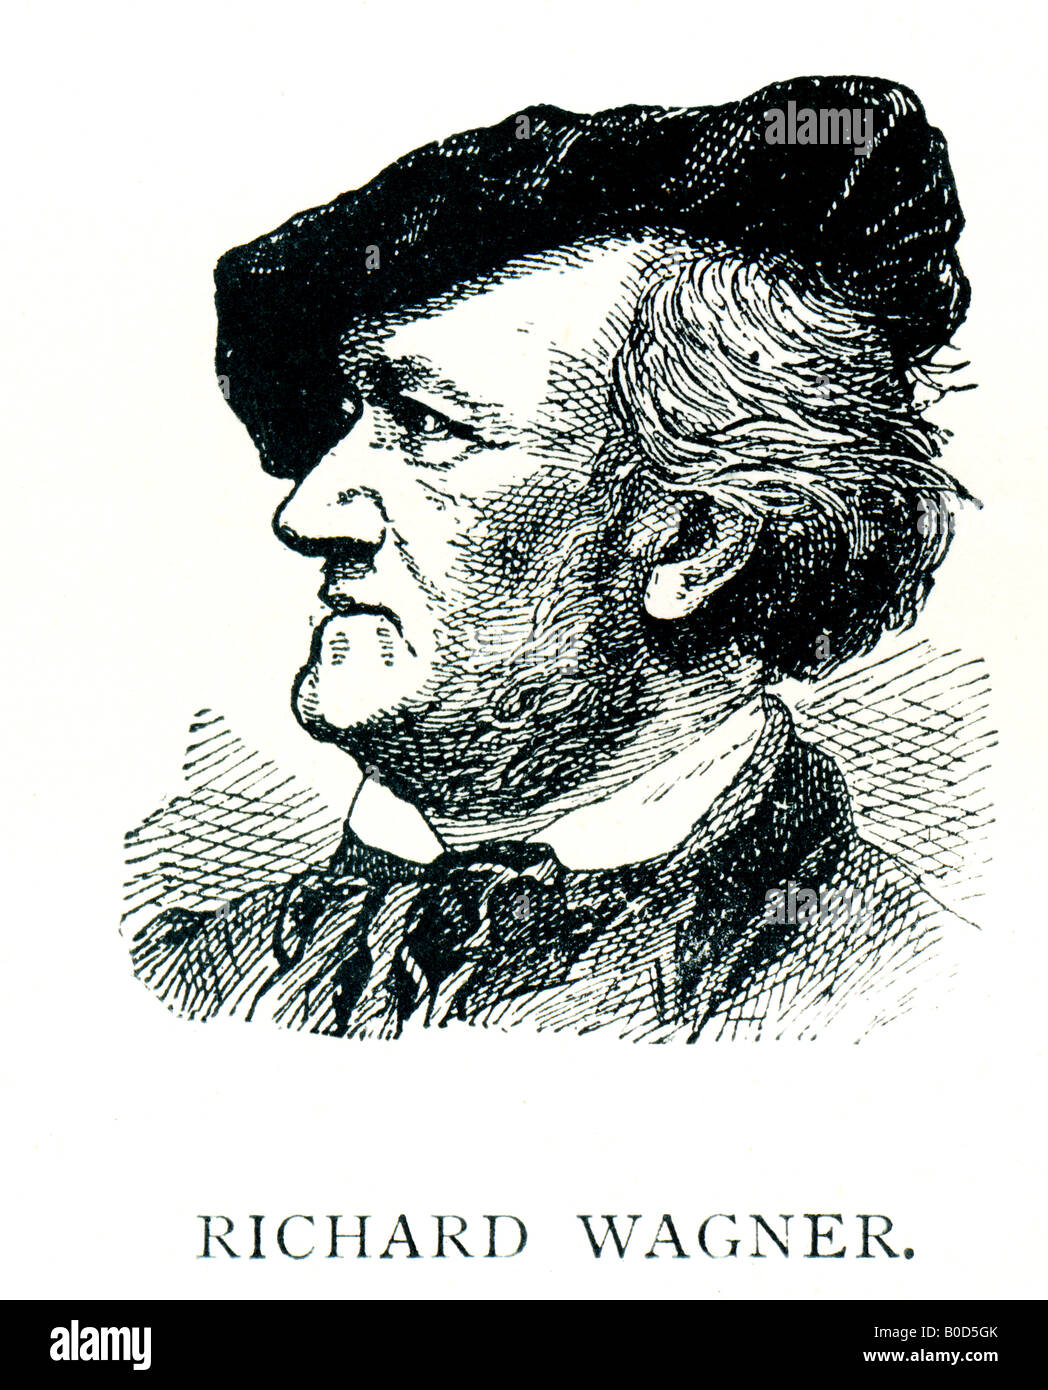 Victorian Steel Engraved  1892 Print of Richard Wagner Musical Composer FOR EDITORIAL USE ONLY - Stock Image